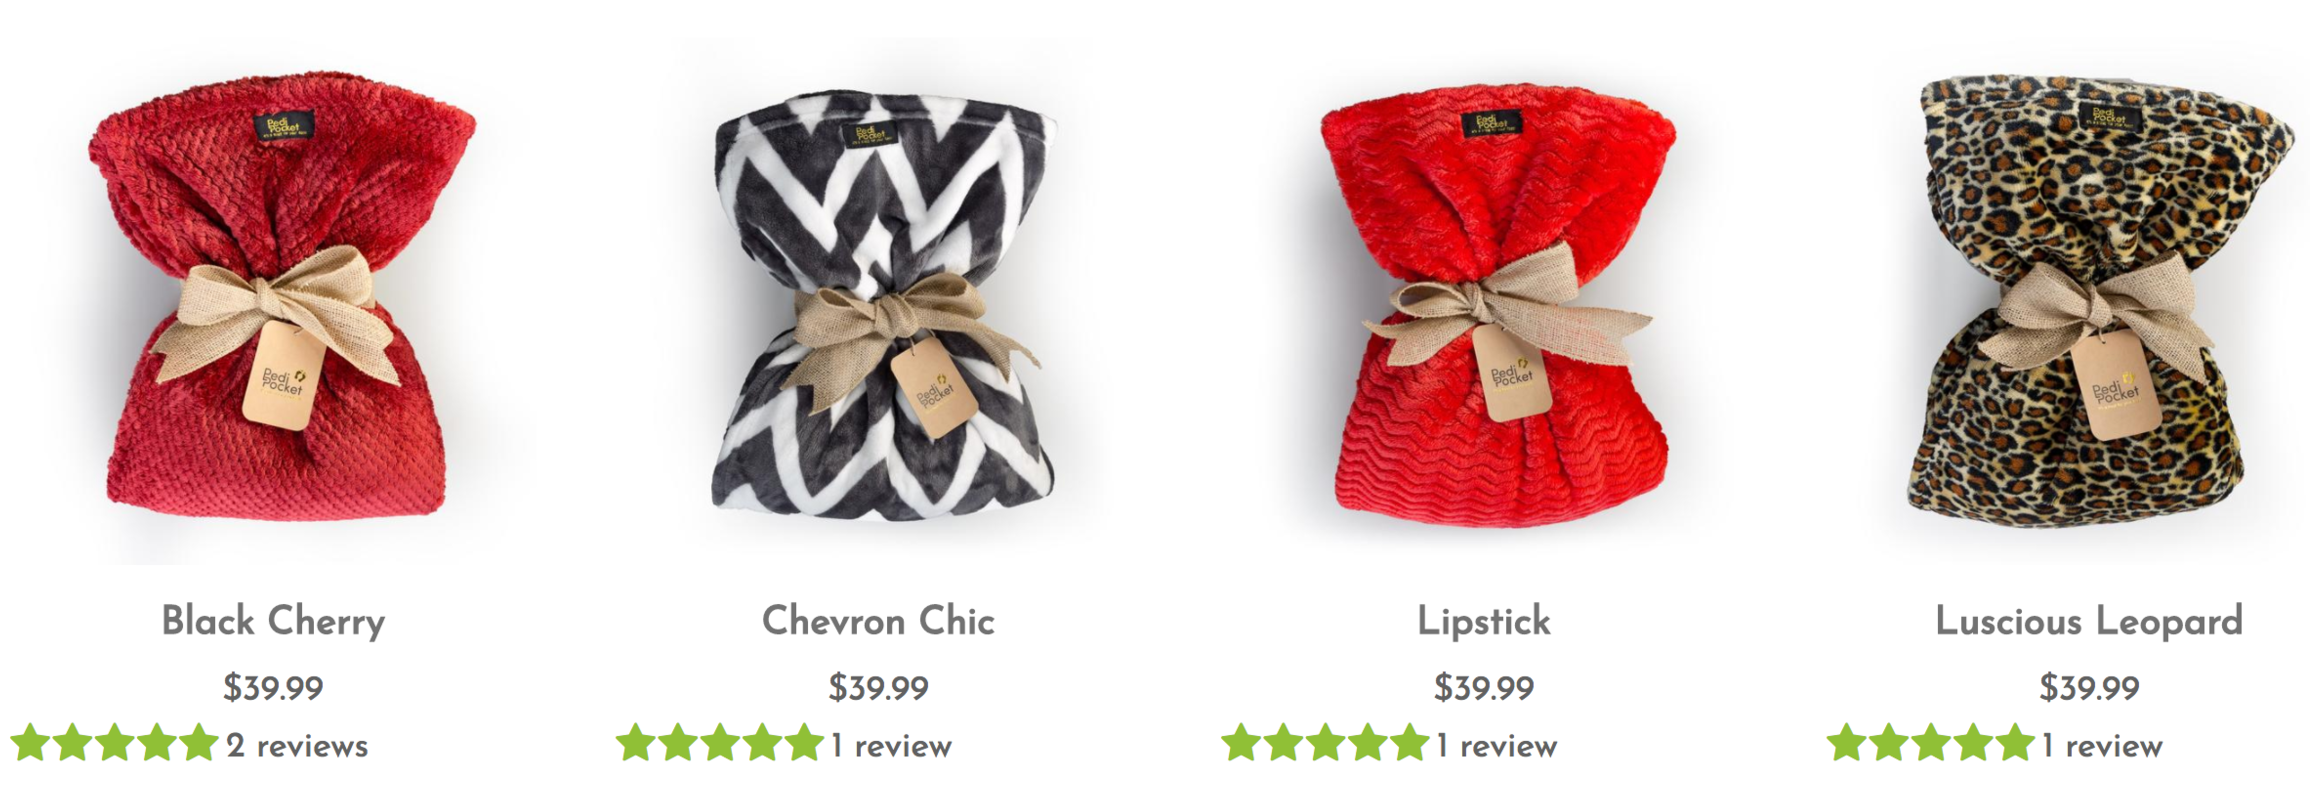 https://pedipocketblanket.com/collections/shop